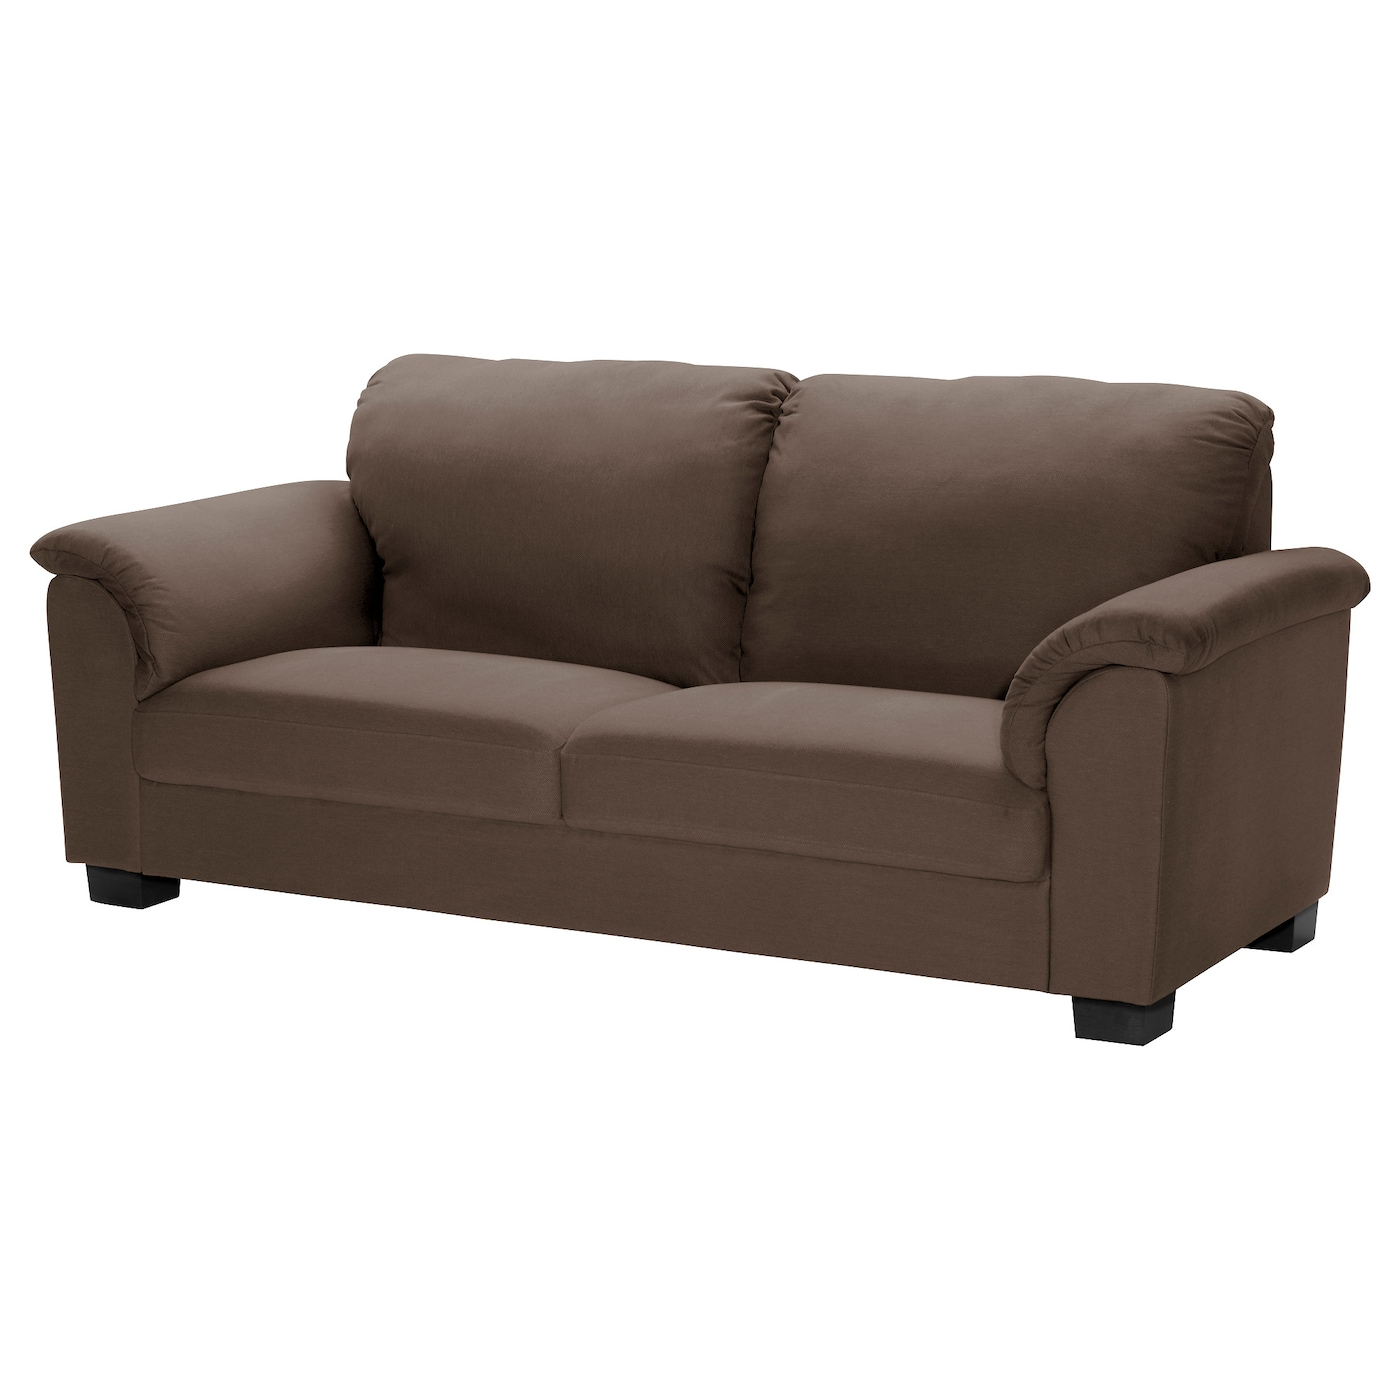 Tidafors three seat sofa dansbo medium brown ikea for 3 on a couch